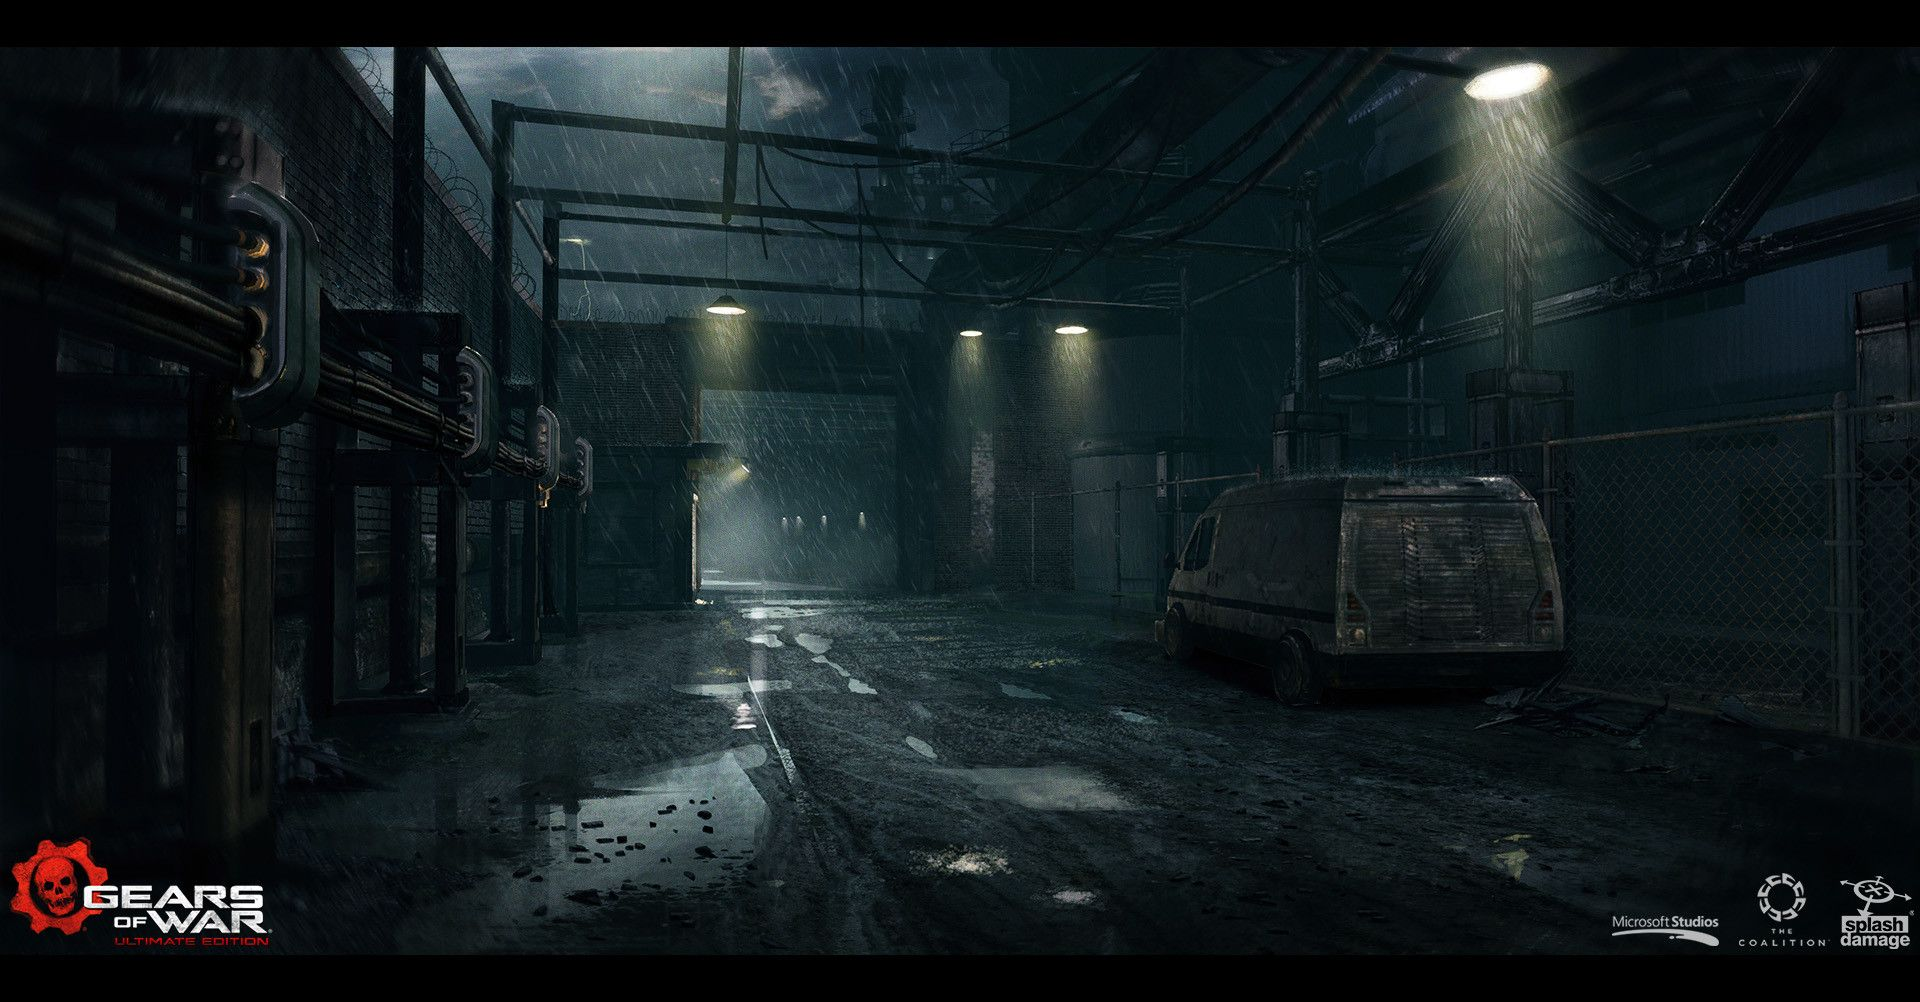 ArtStation - Gears of War: Ultimate Edition - Act 3 Environment